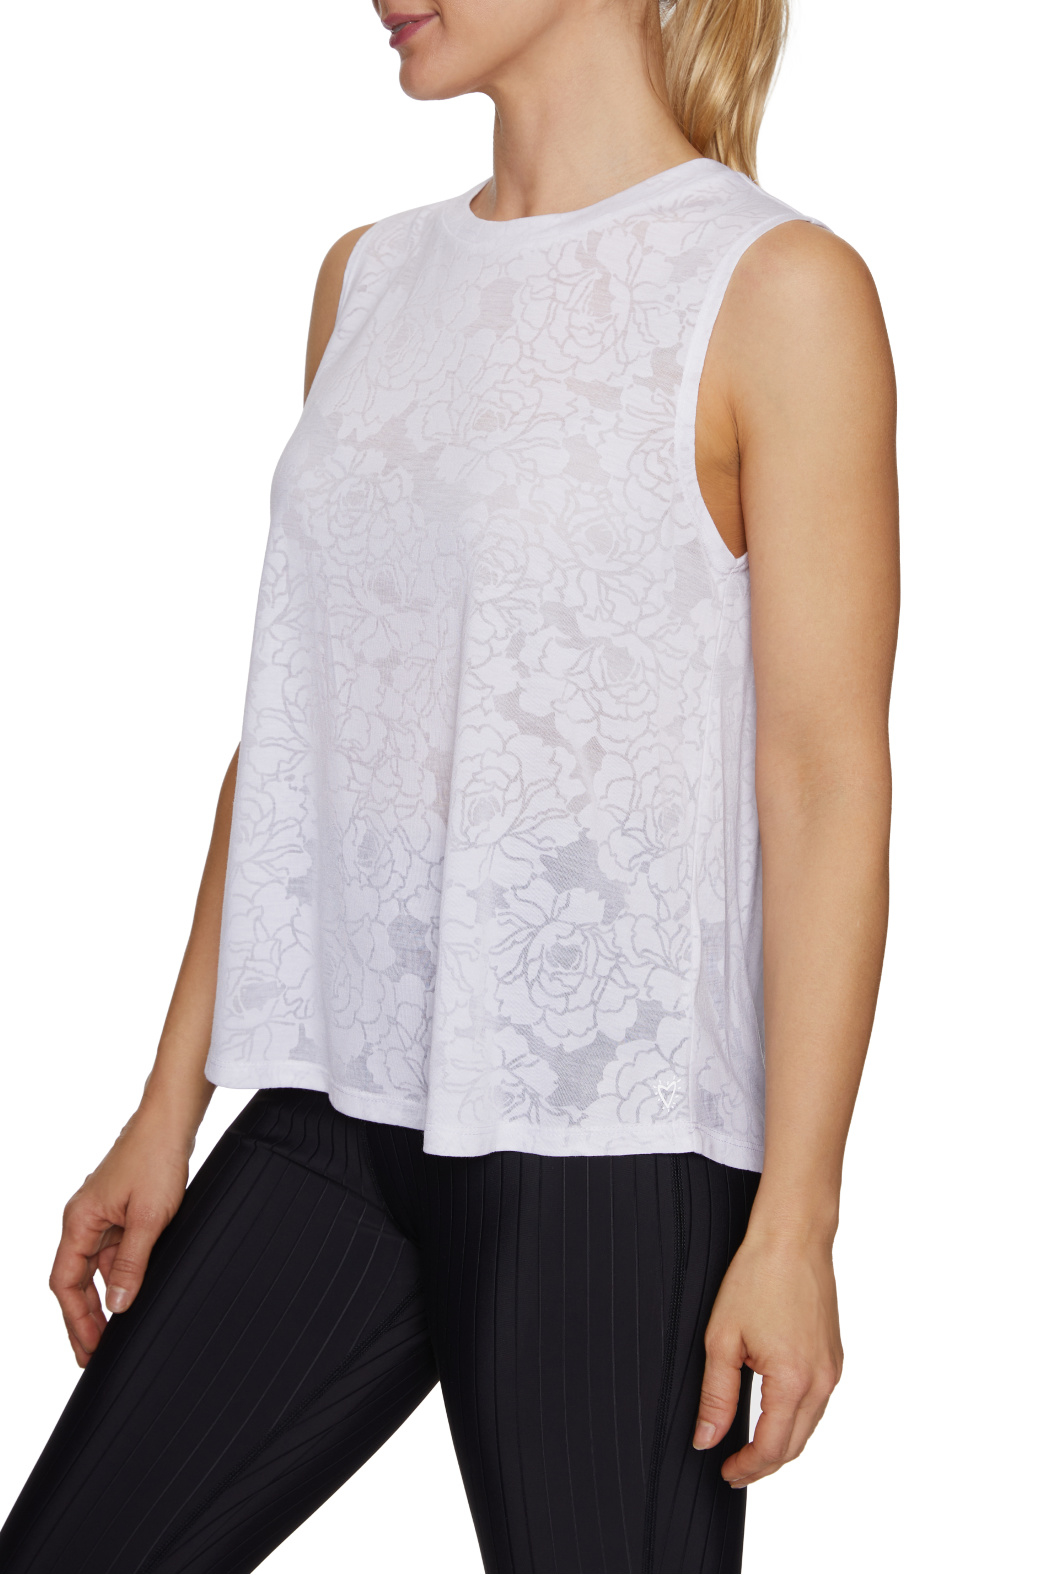 Betsey Johnson Floral Burnout Swing Muscle Tank - Front Full Image